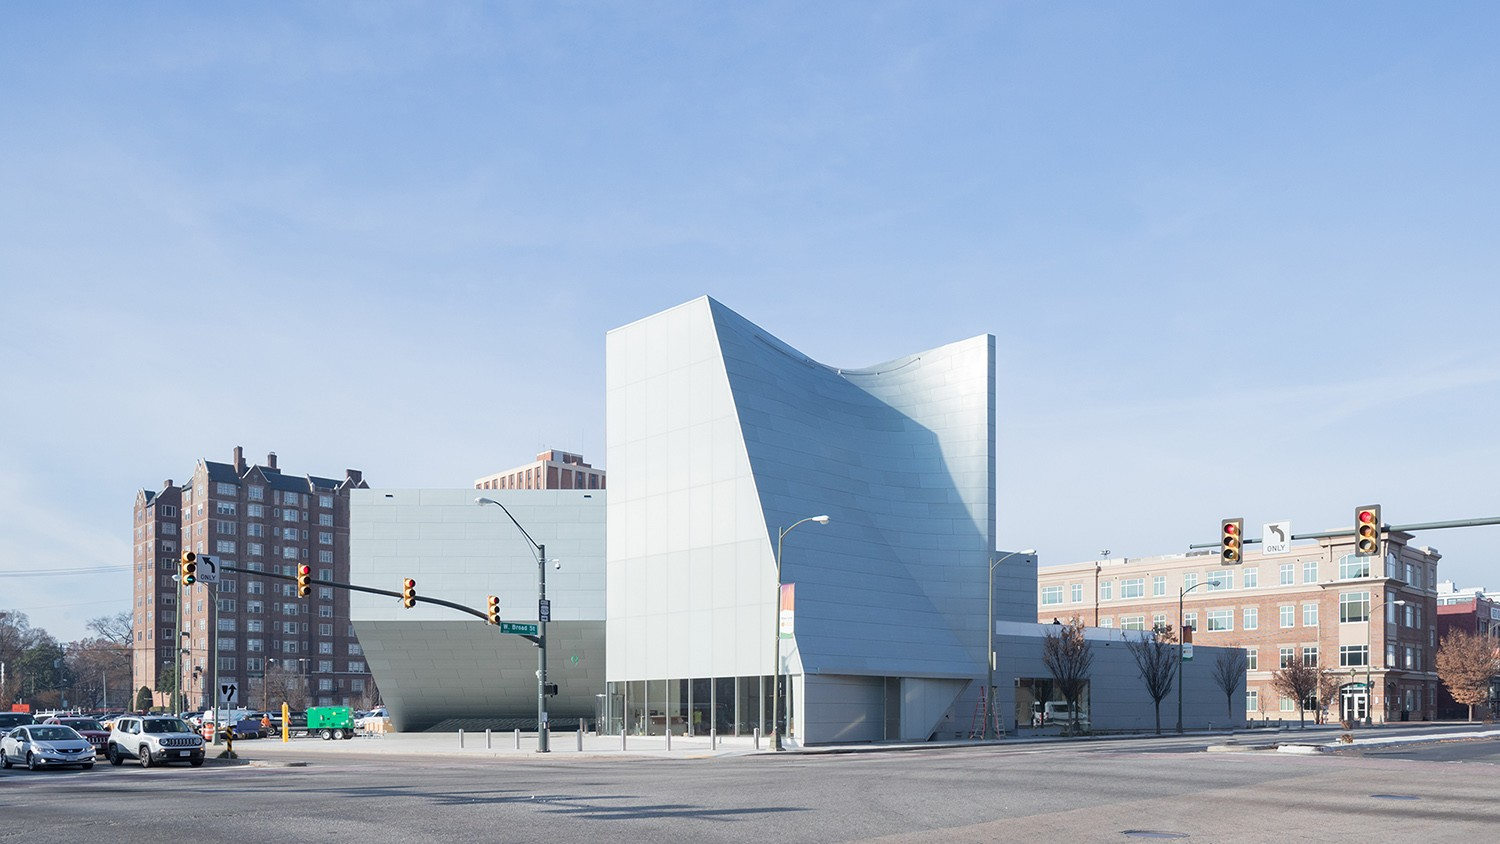 https://s3.us-east-2.amazonaws.com/steven-holl/uploads/projects/project-images/IwanBaan_ICA_VCU_17-12SHA3652_WH.jpg